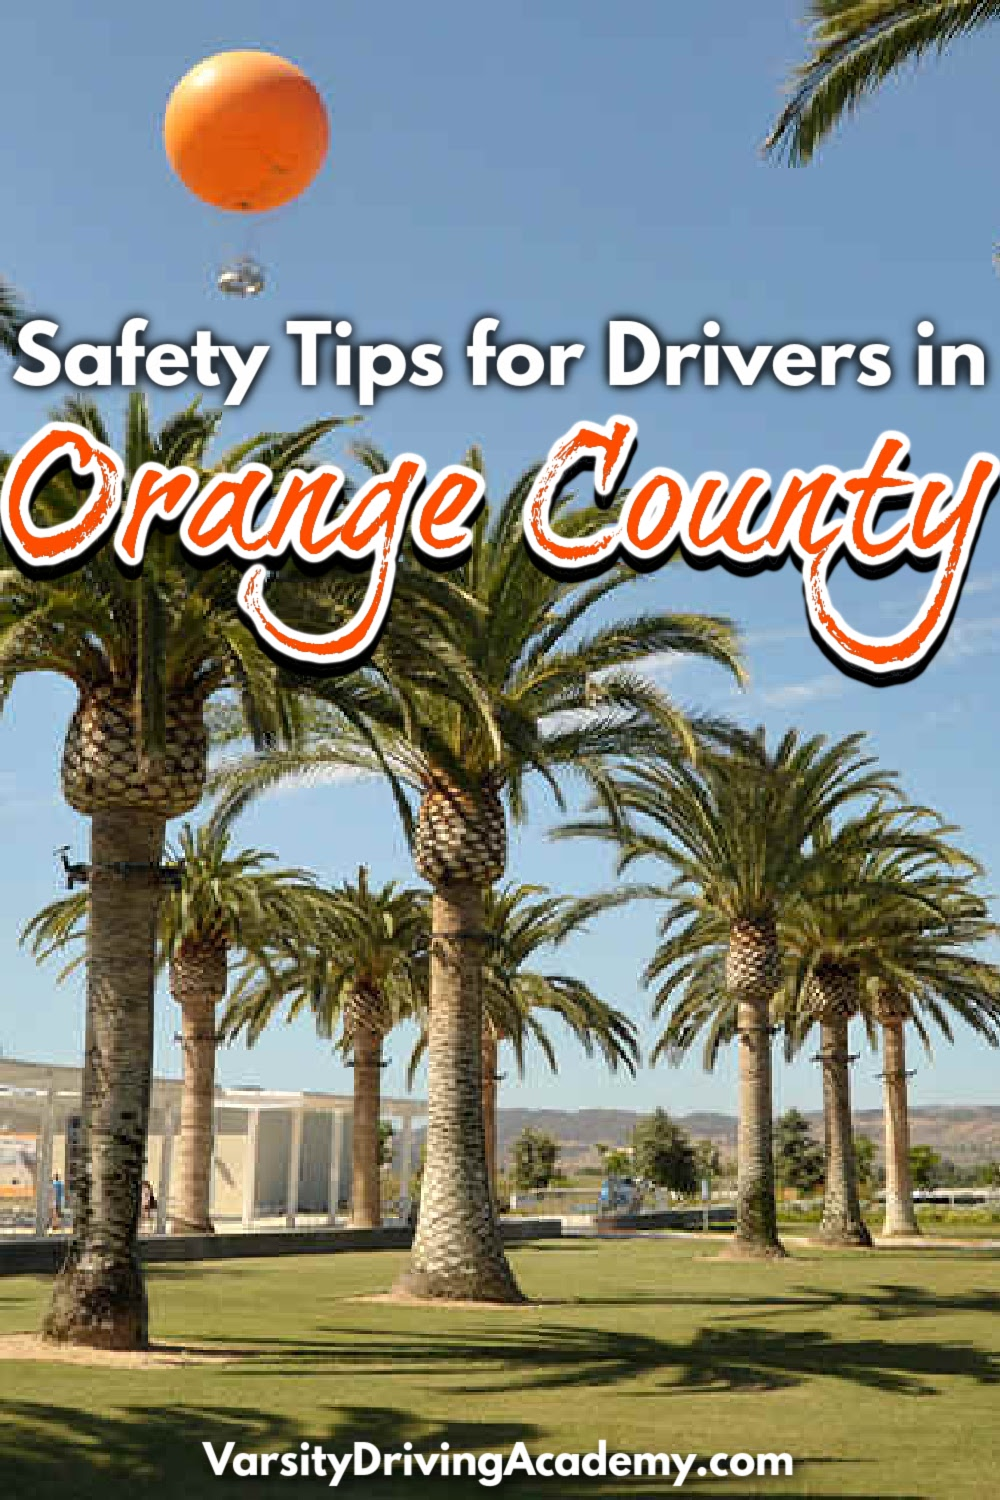 Safety tips for Orange County drivers can help drivers and pedestrians remain safe while sharing the beautiful outdoors.